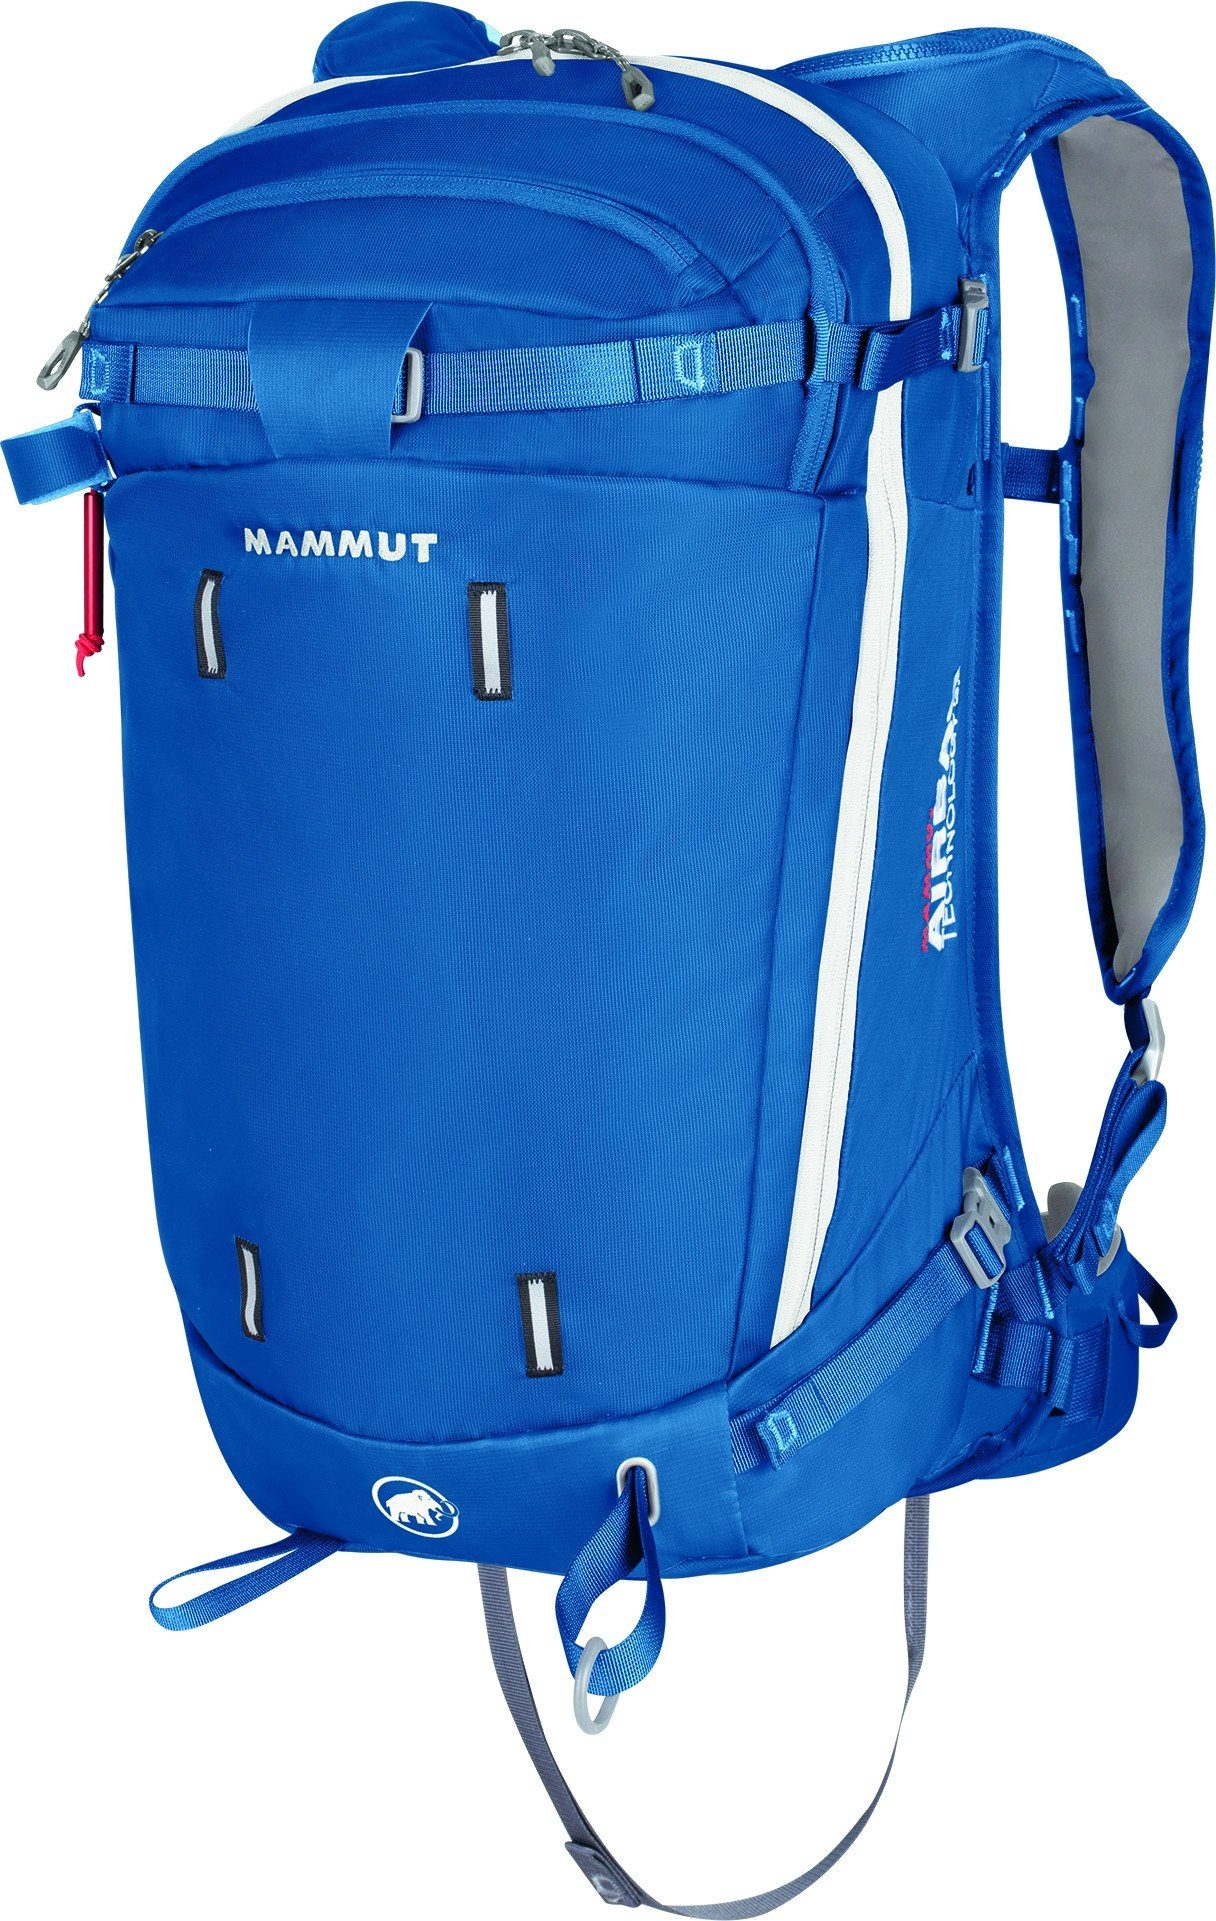 Mammut Lawinenrucksack »Light Protection Airbag 3.0 Backpack Unisex 30 L«